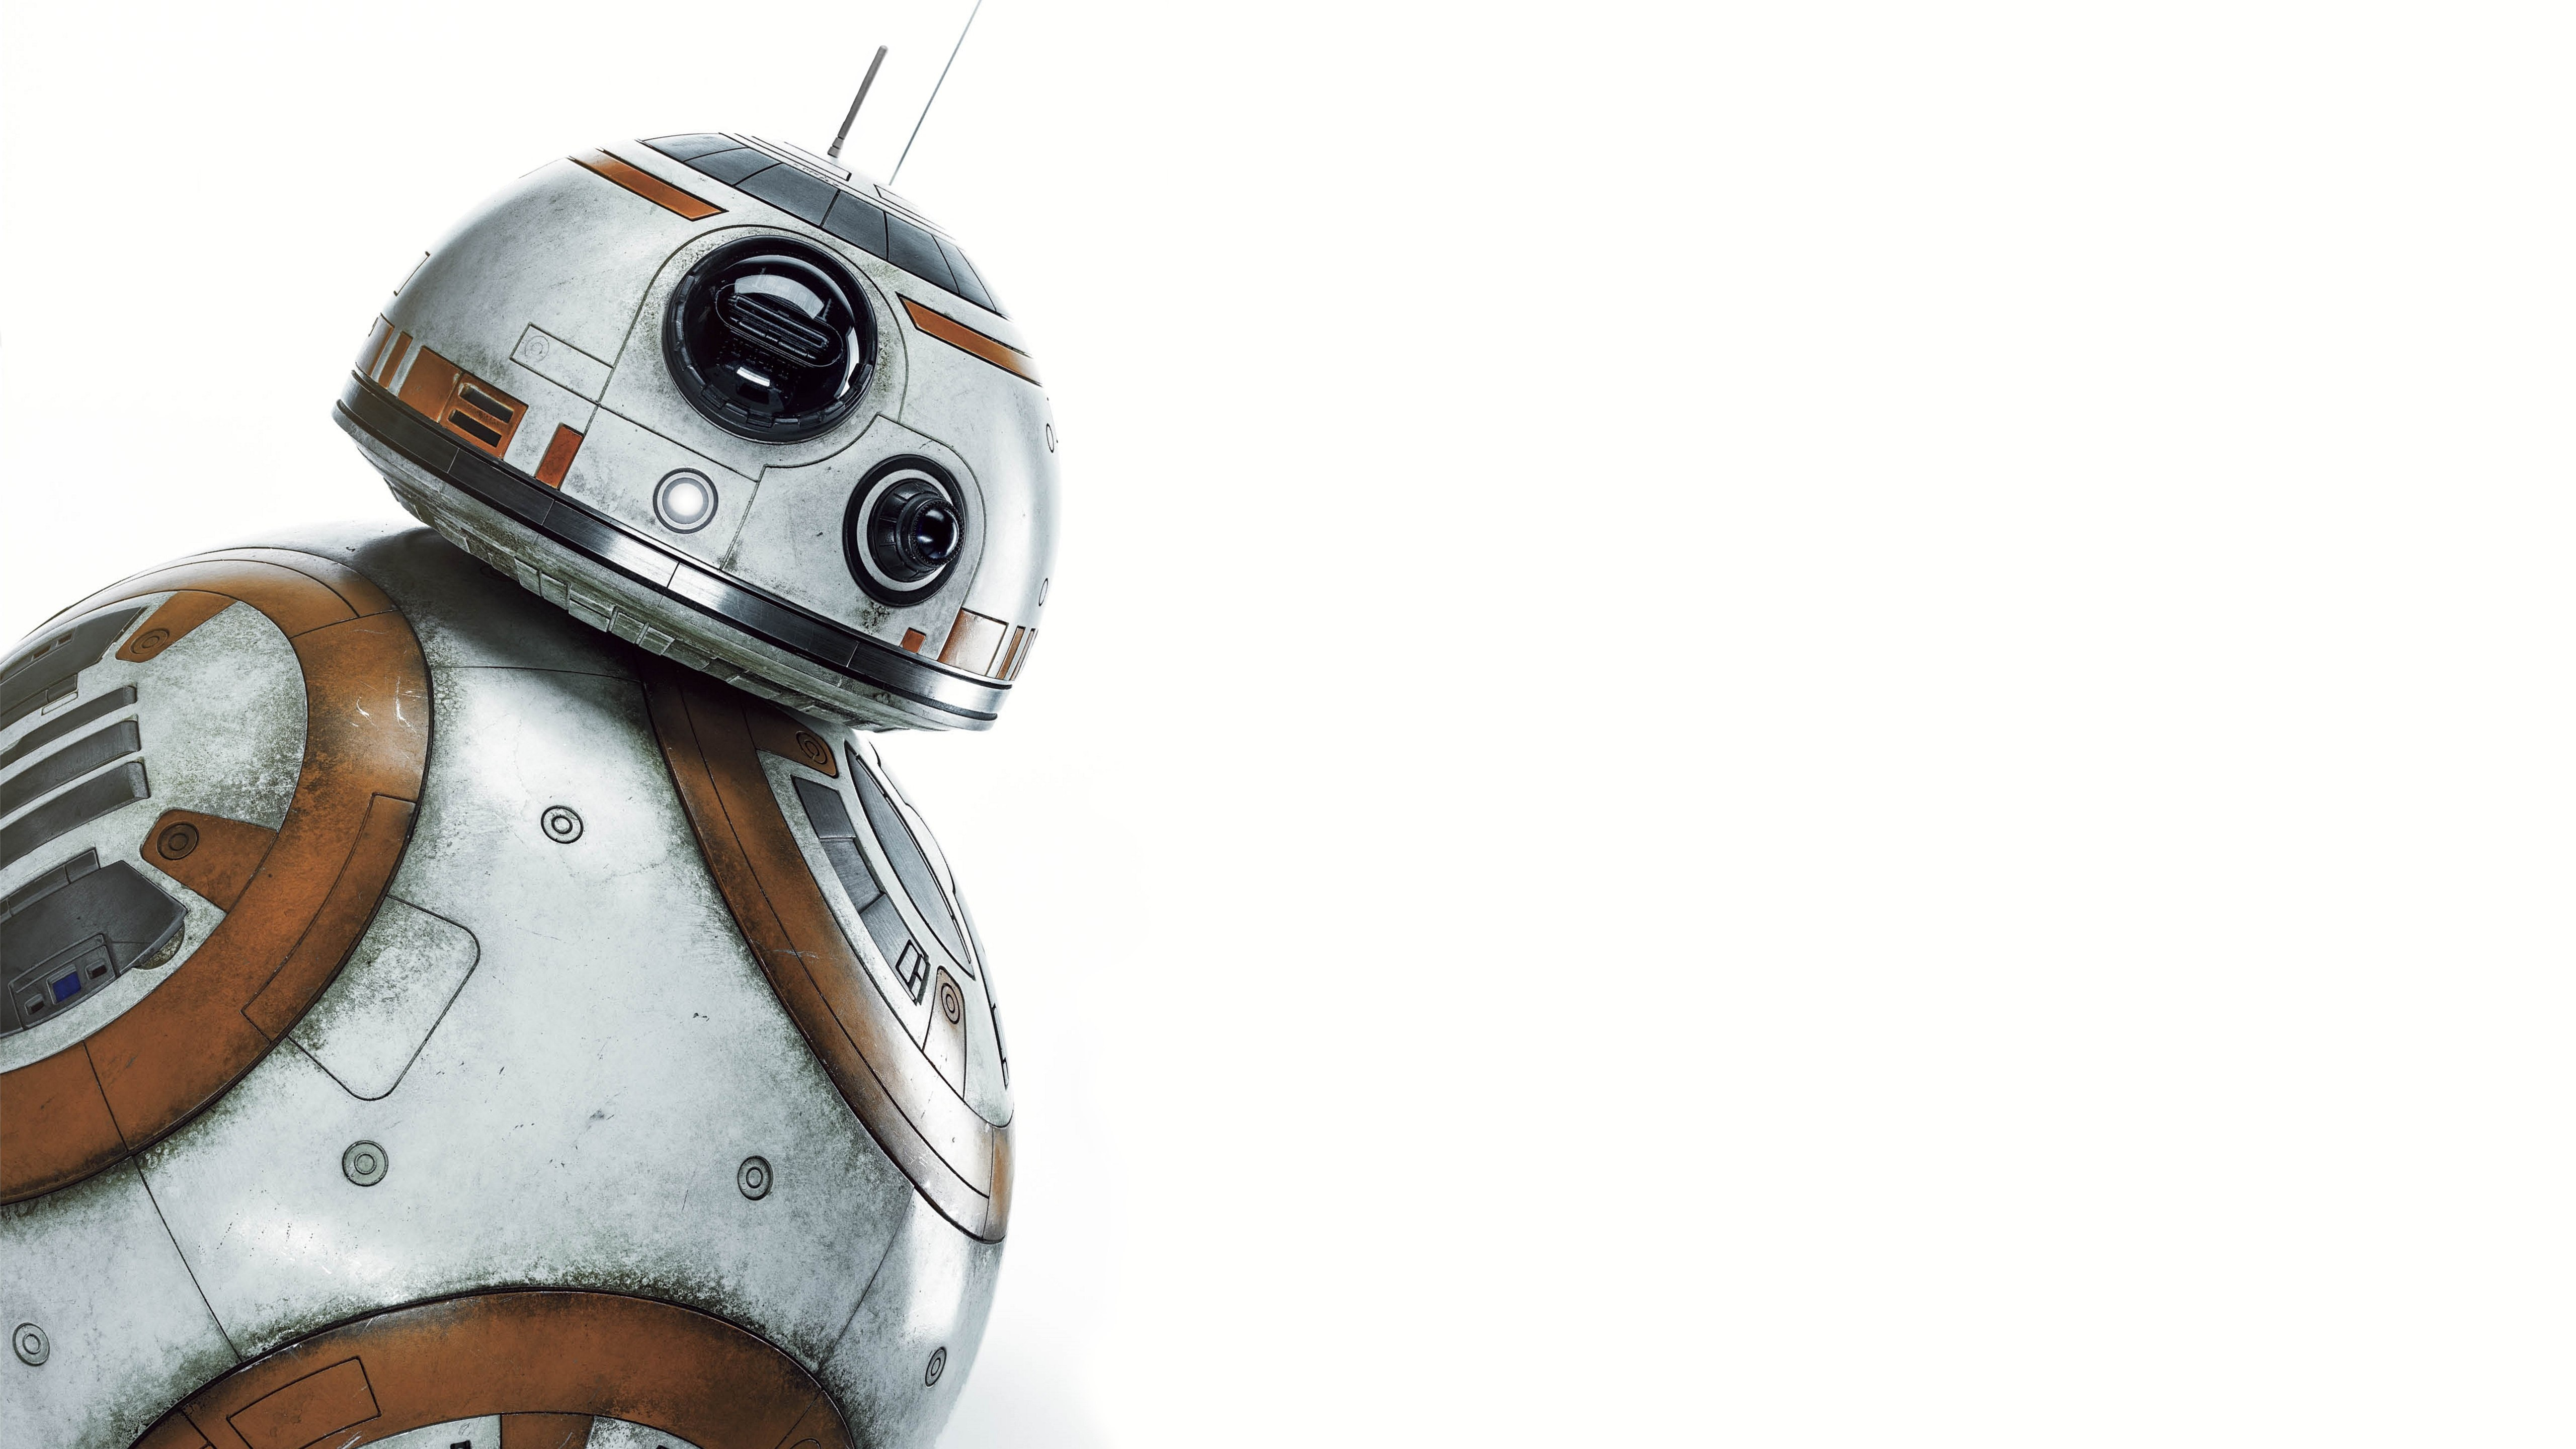 Star Wars BB 8 Droid 4K 5K Wallpapers in jpg format for download 5120x2880